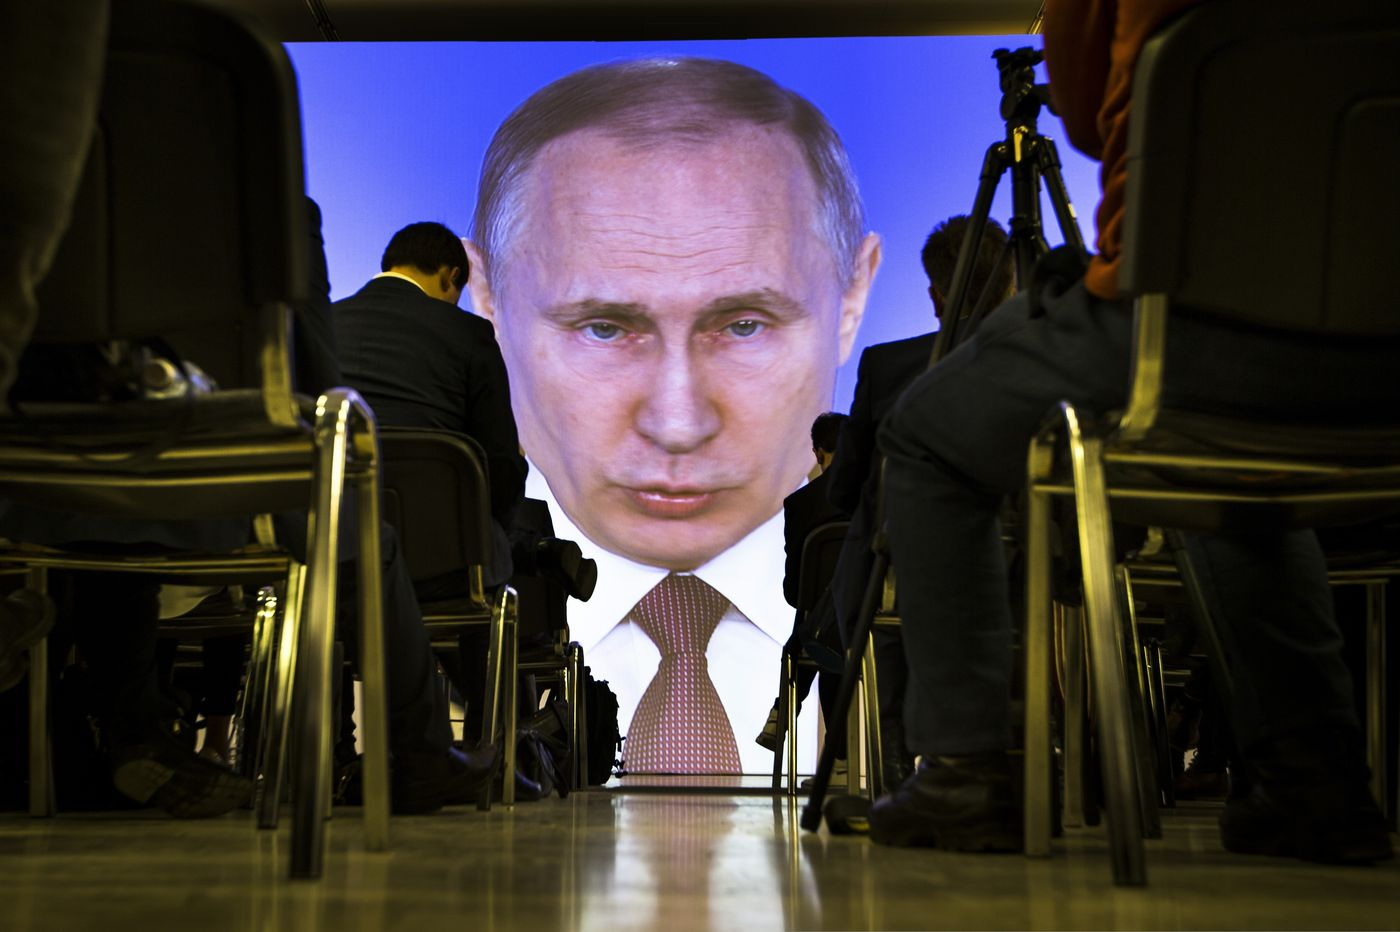 Putin scores some wins but tensions with the West mount